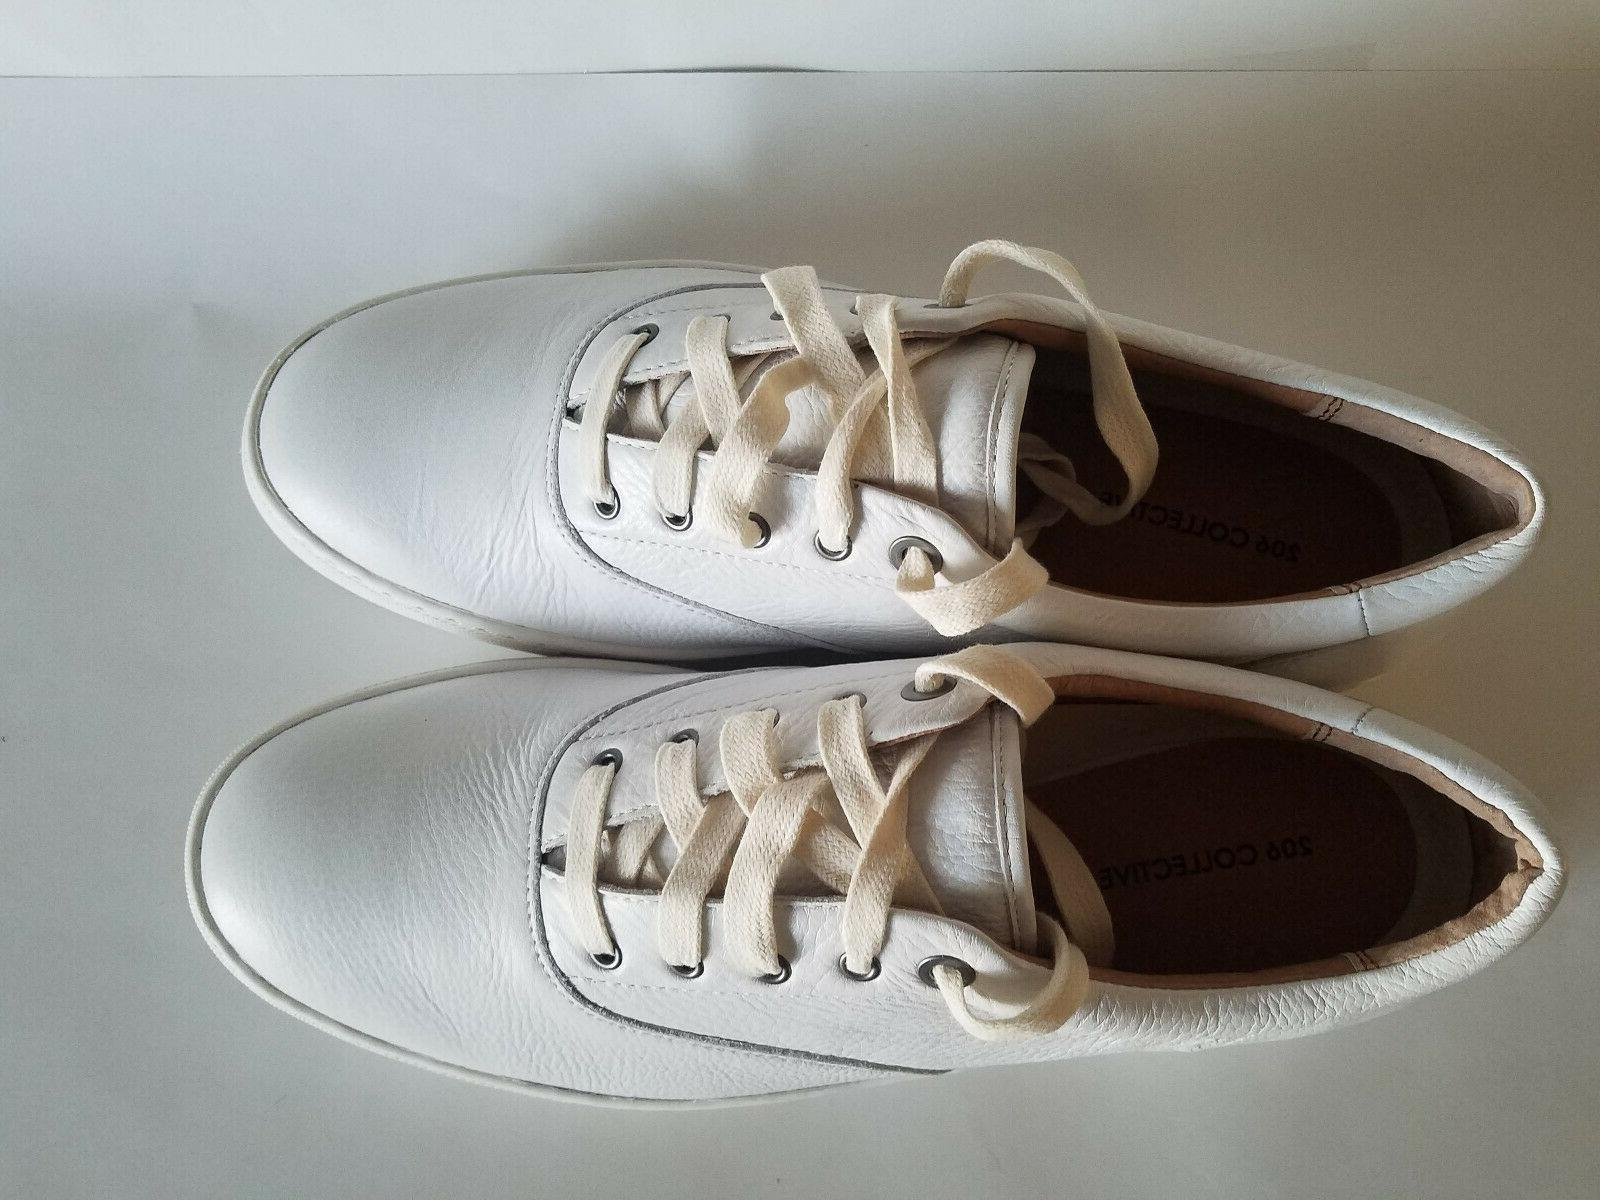 206 Collective Casual White Leather, 13